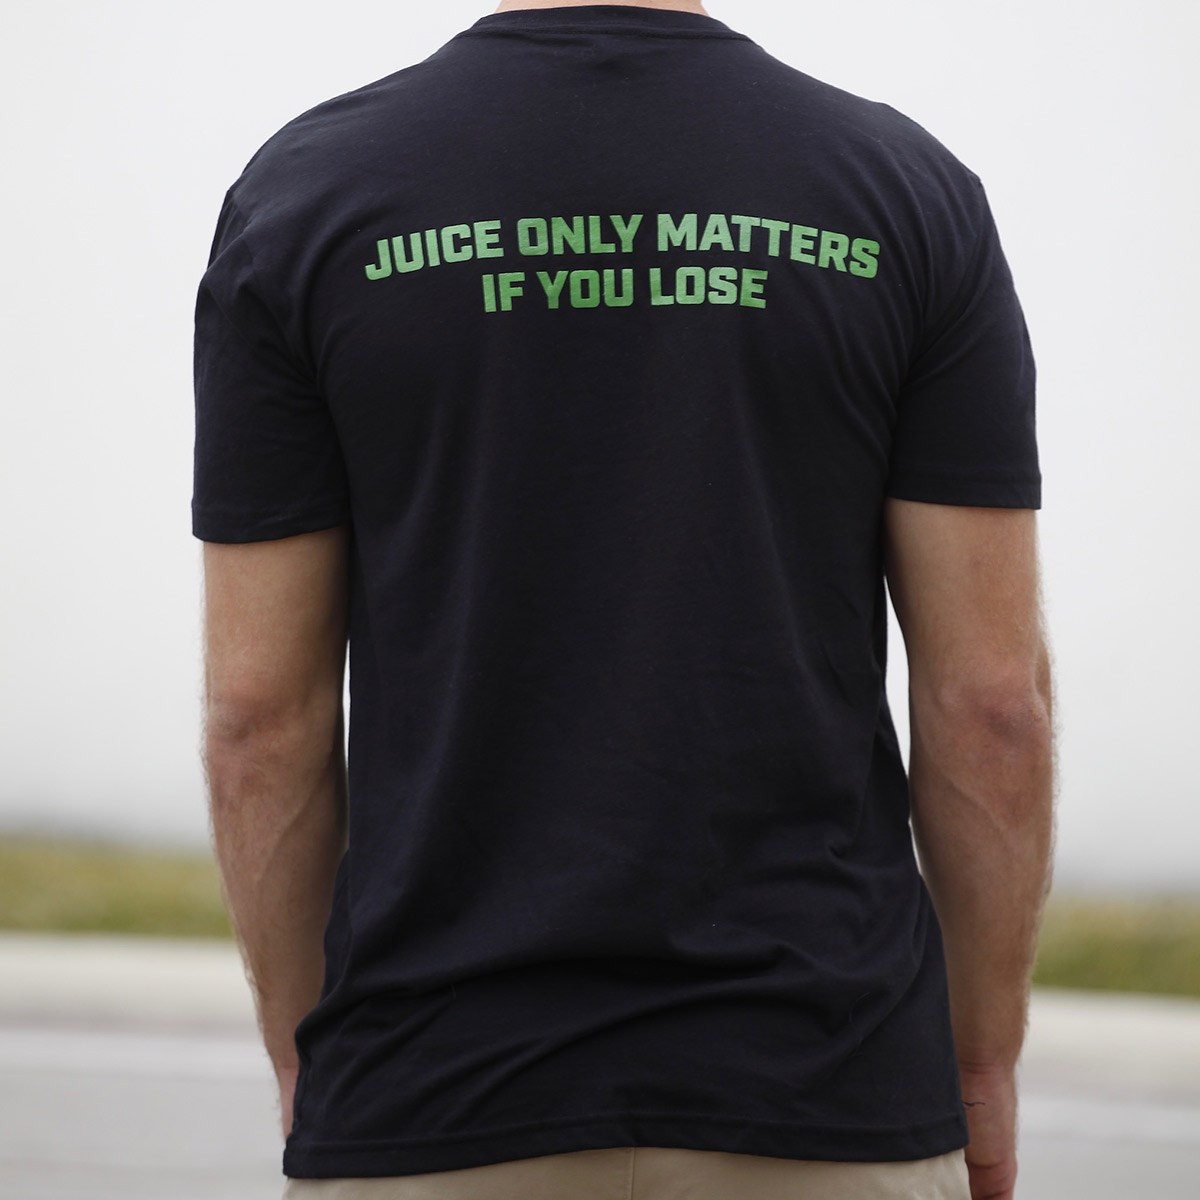 Juice only matters if you lose - black t shirt - back